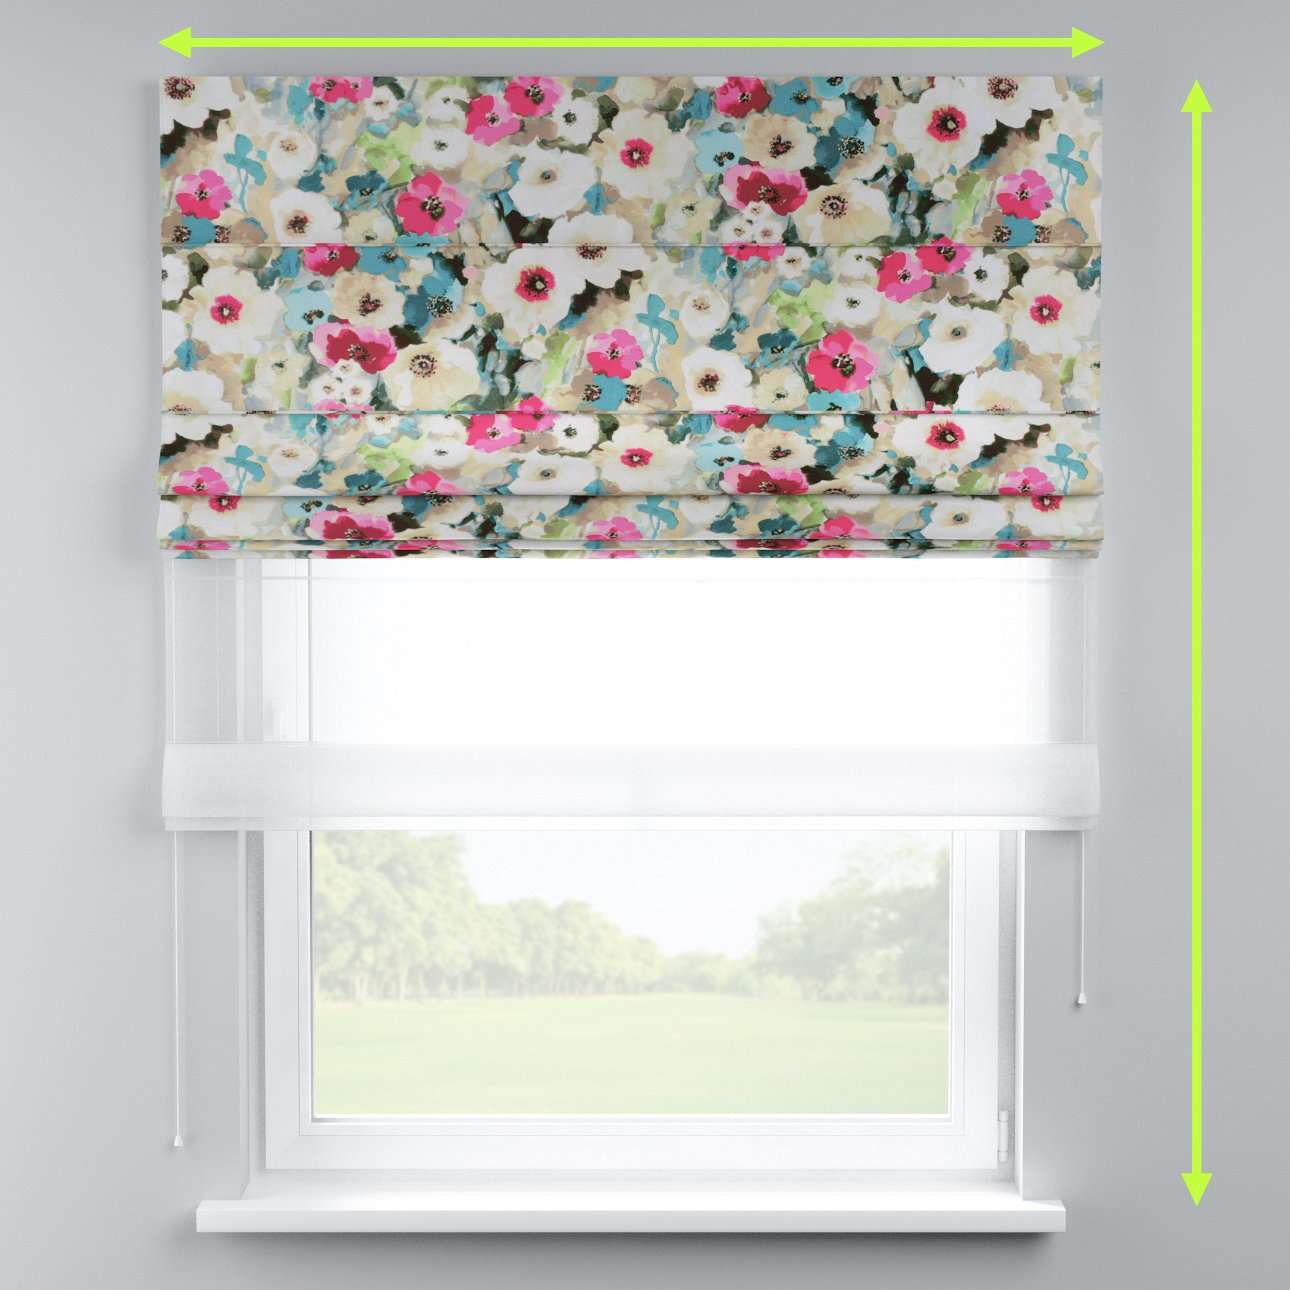 Voile and fabric roman blind (DUO II) in collection Monet, fabric: 140-08